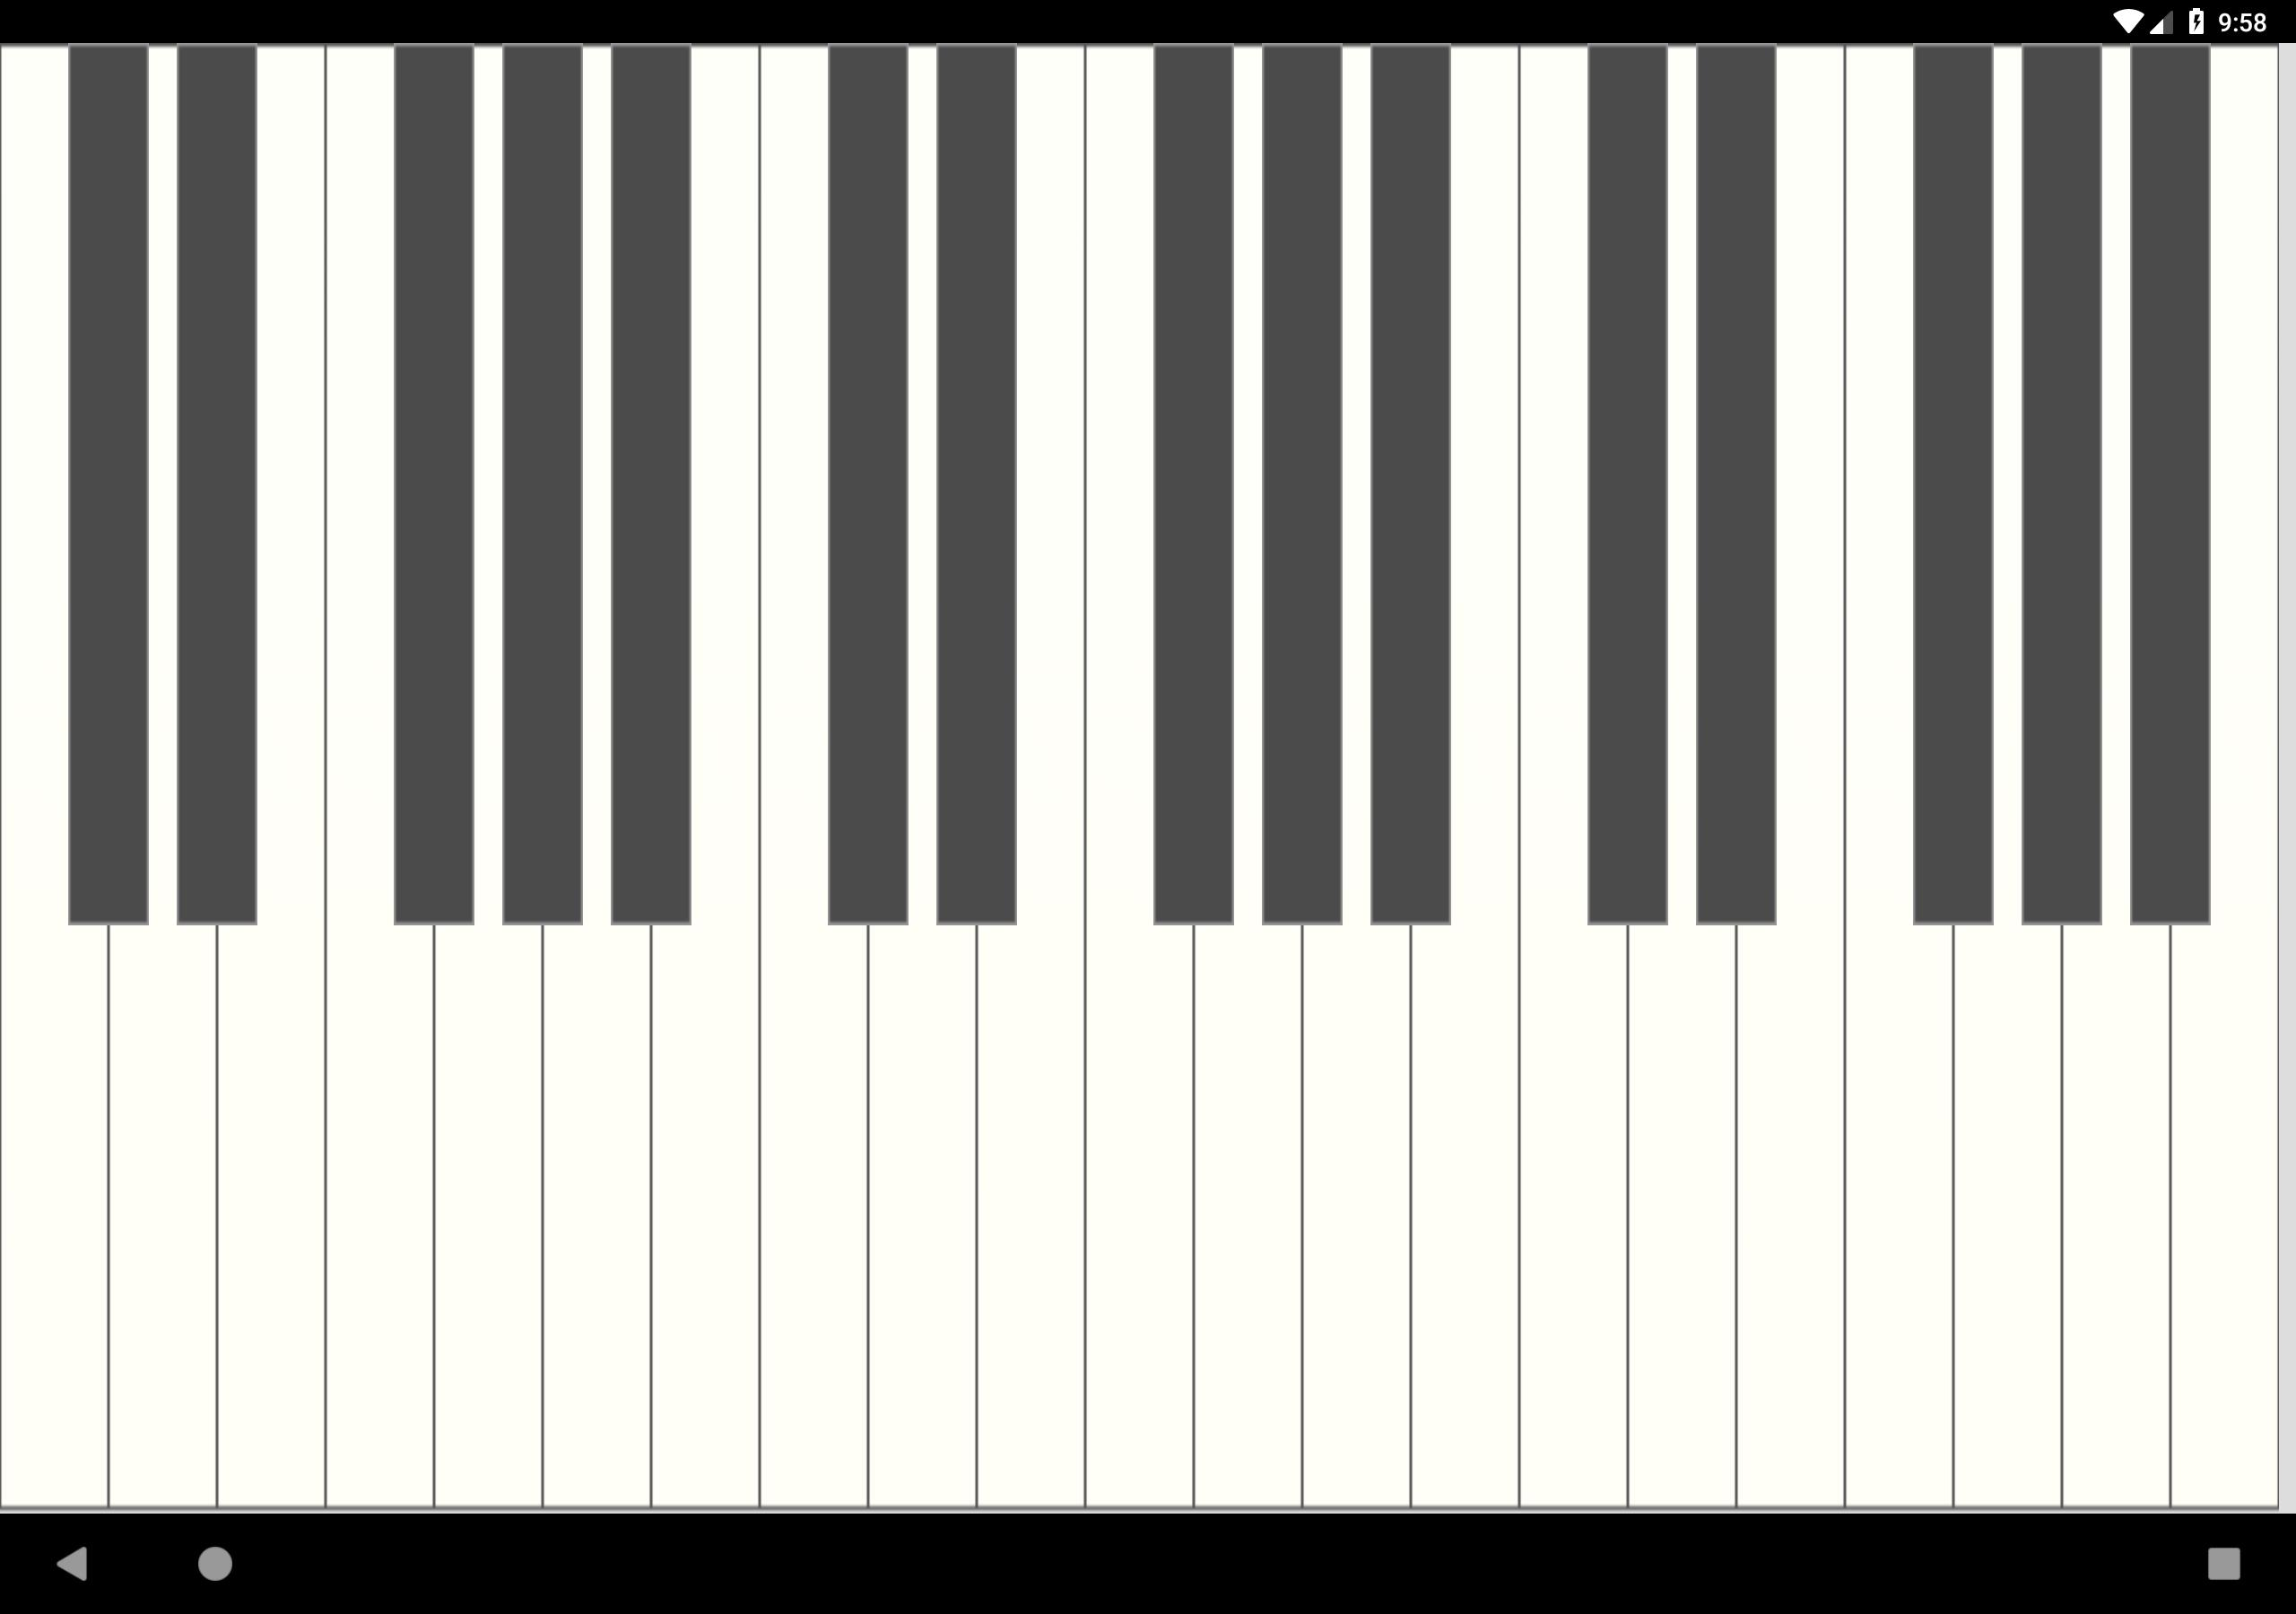 Pro Roblox Oof Piano Death Sound Meme Piano For Android Apk